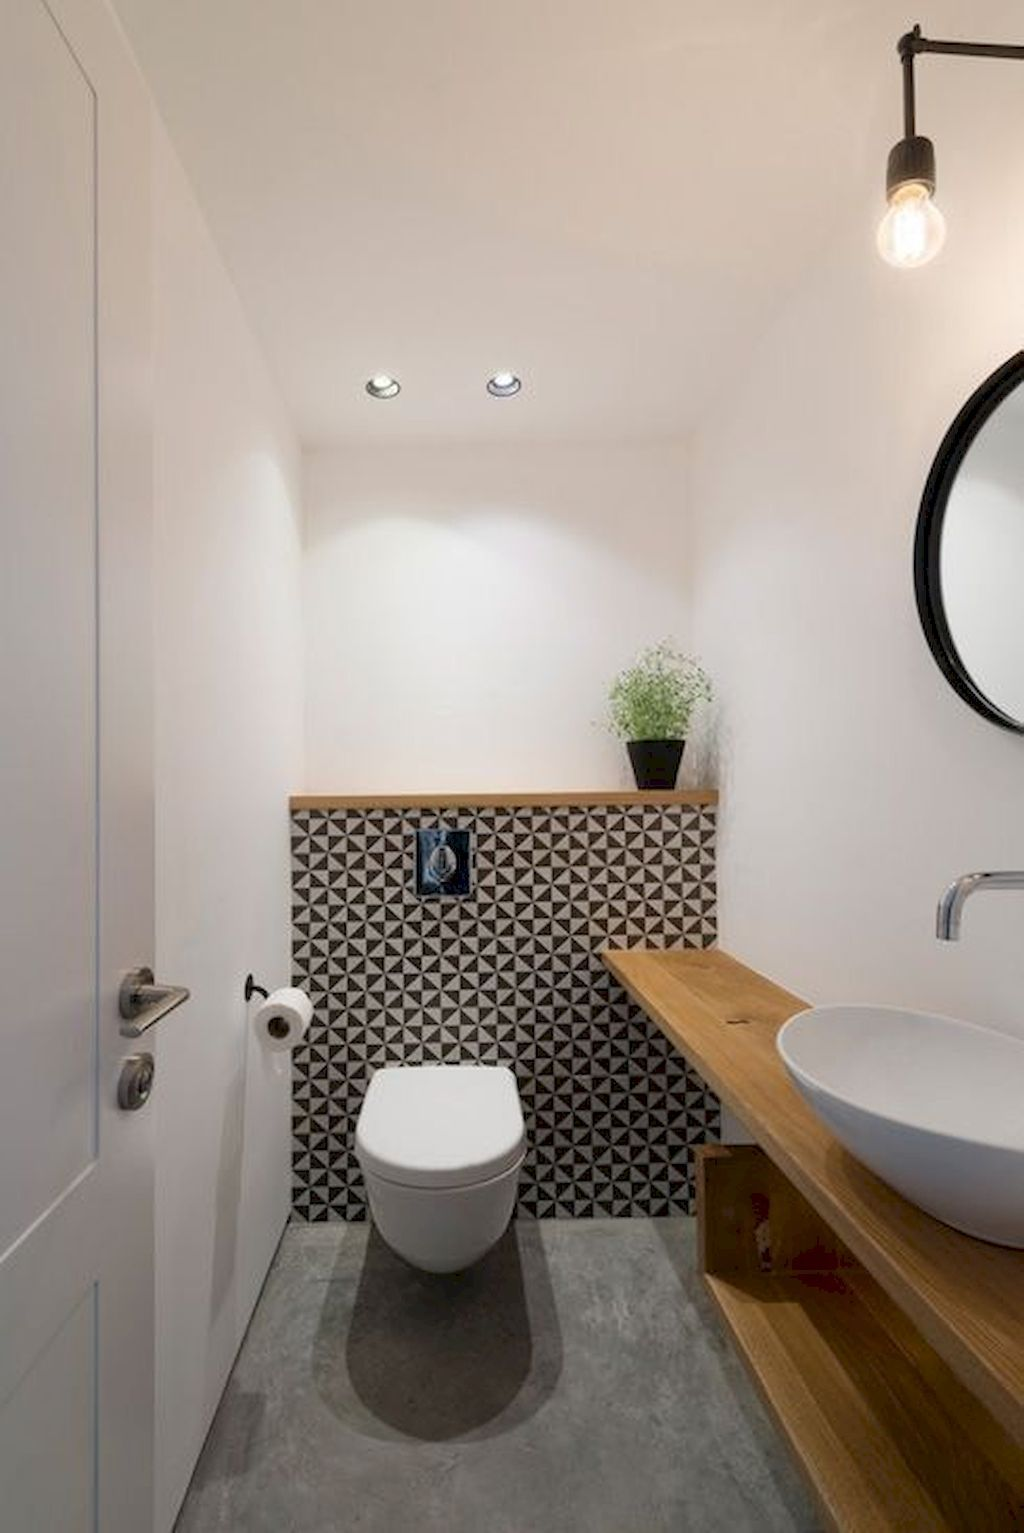 Bathroom Demolitionisunquestionably Important For Your Home Whether You Pick The Bathroom Towel Small Bathroom Inspiration Small Toilet Design Small Bathroom Important inspiration small bathroom